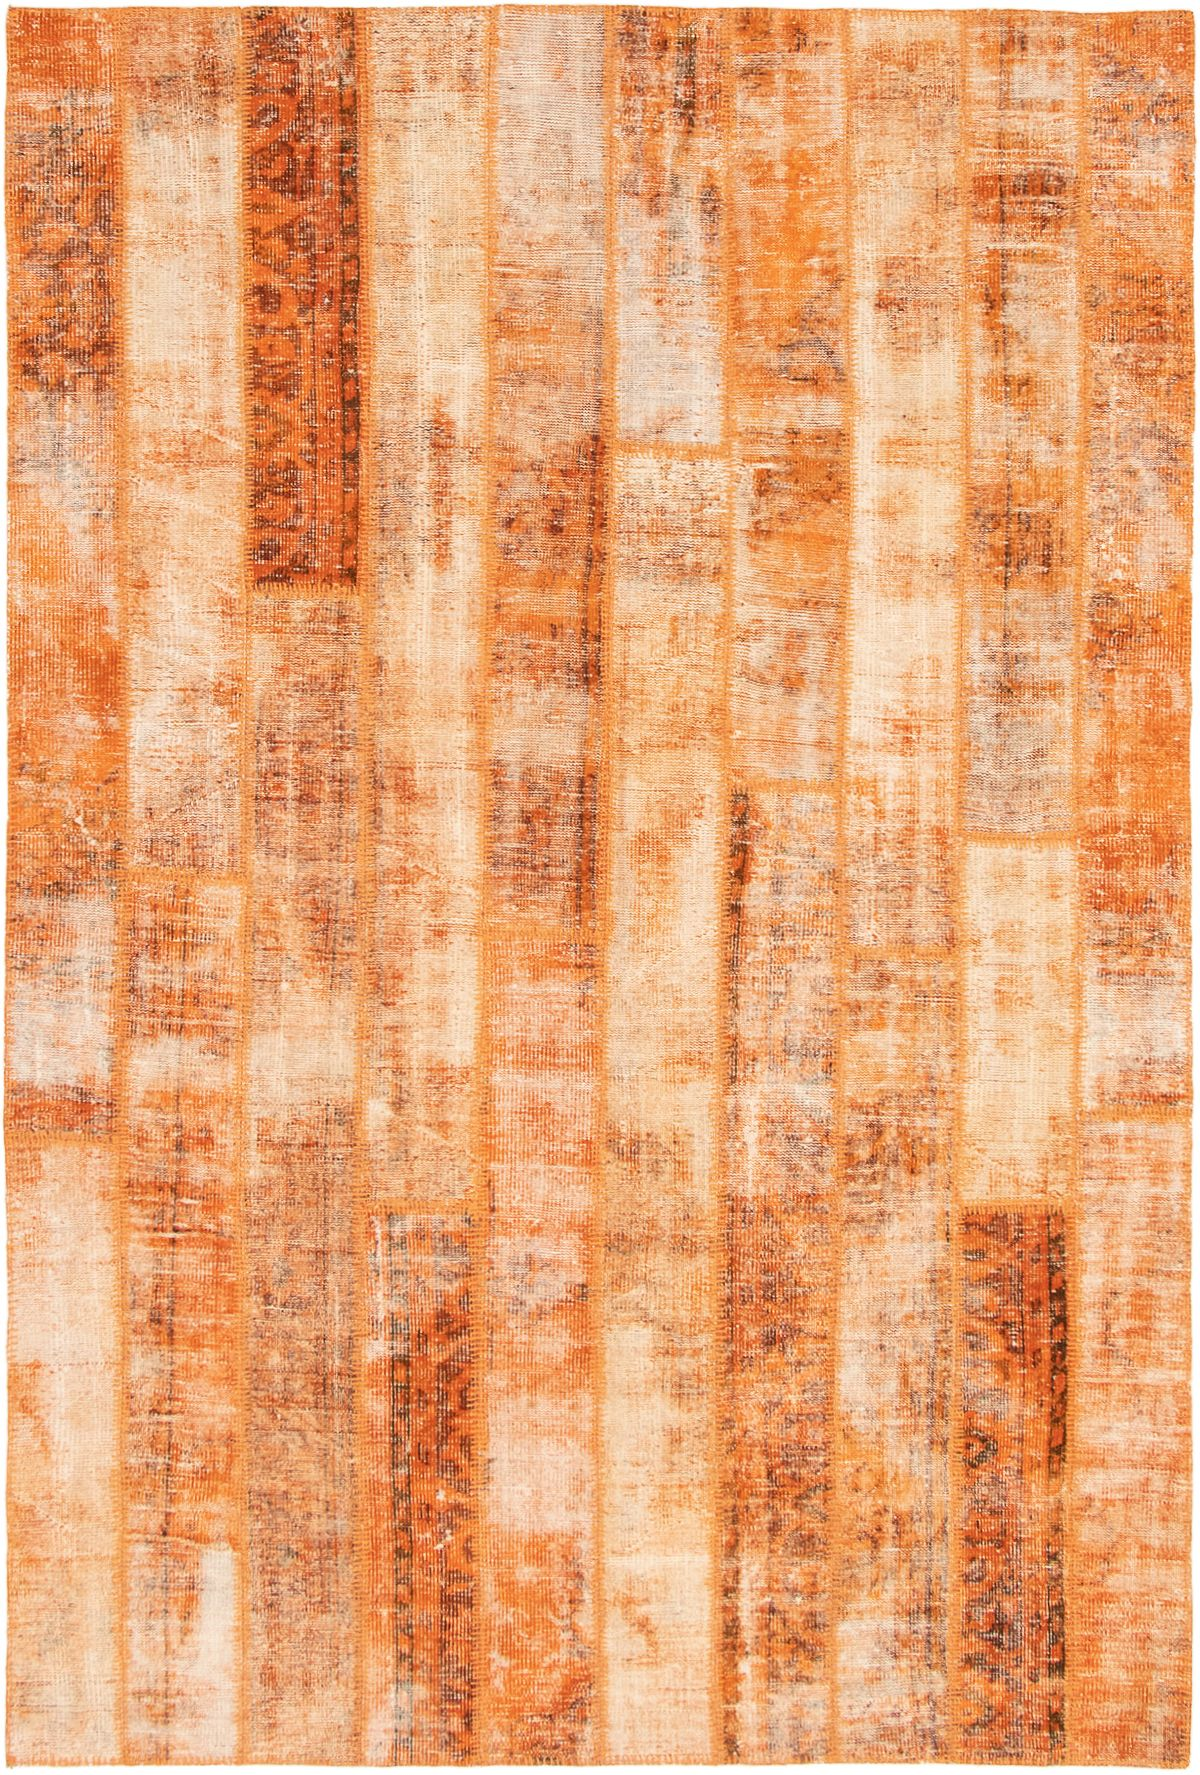 """Hand-knotted Color Transition Patch Orange Wool Rug 6'7"""" x 9'11"""" Size: 6'7"""" x 9'11"""""""